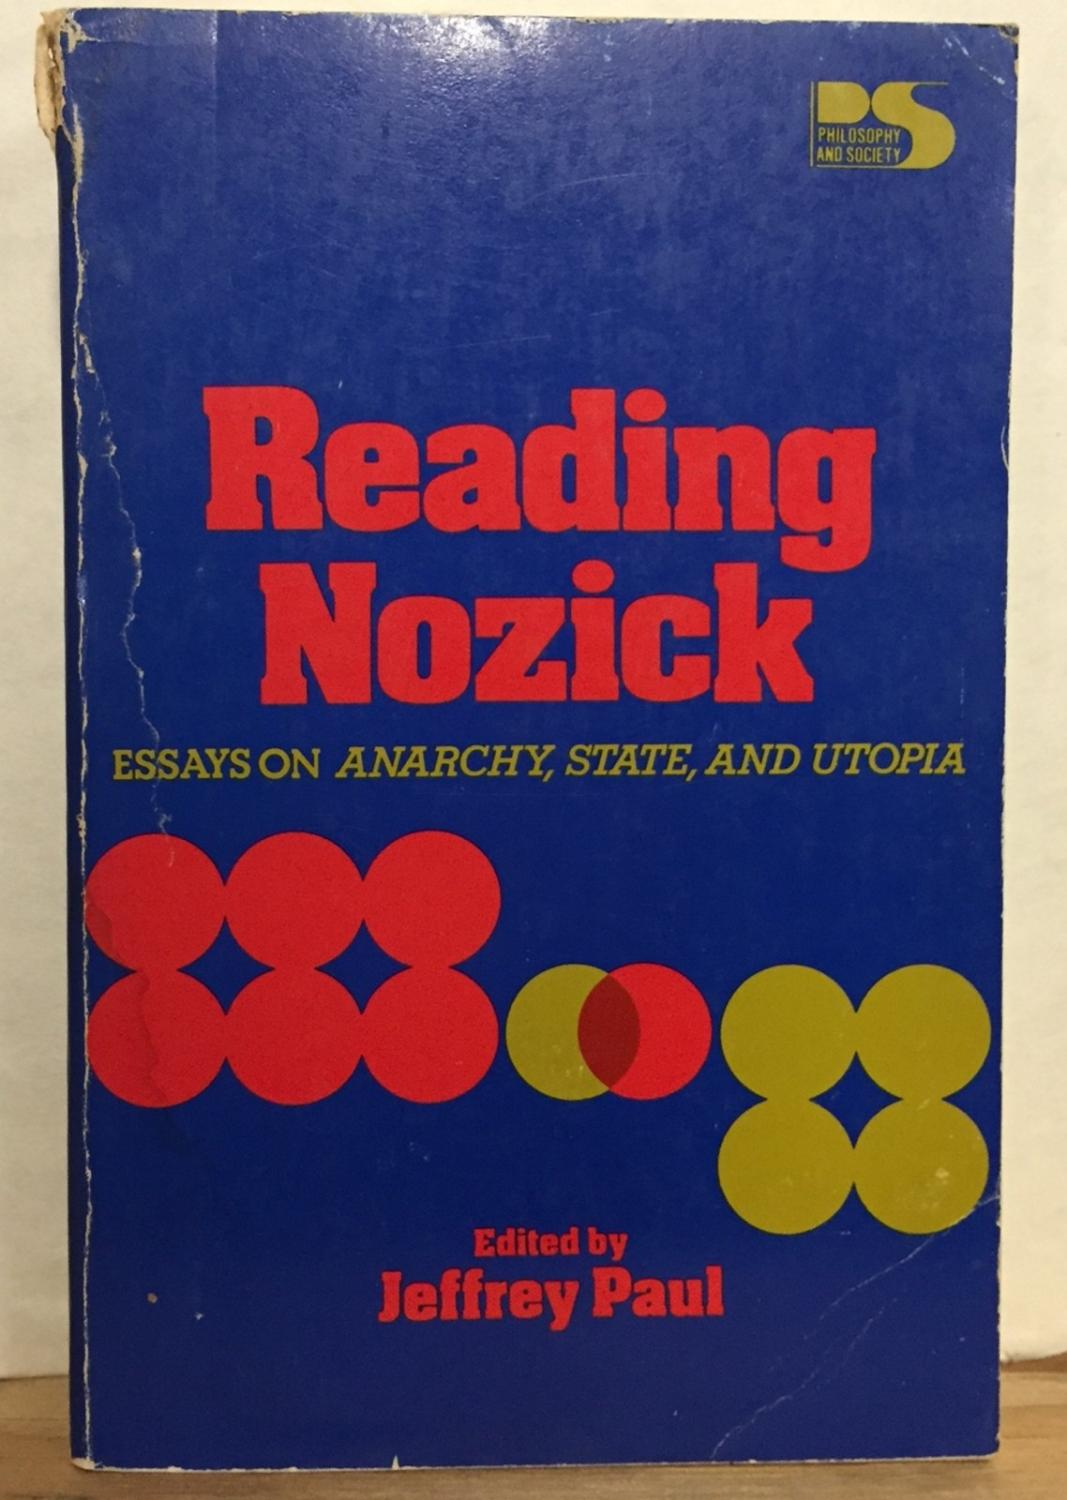 anarchy essay nozick reading state utopia Reading nozick : essays on anarchy, state, and utopia / published: (1983  the cambridge companion to nozick's anarchy, state, and utopia / published: (2011).